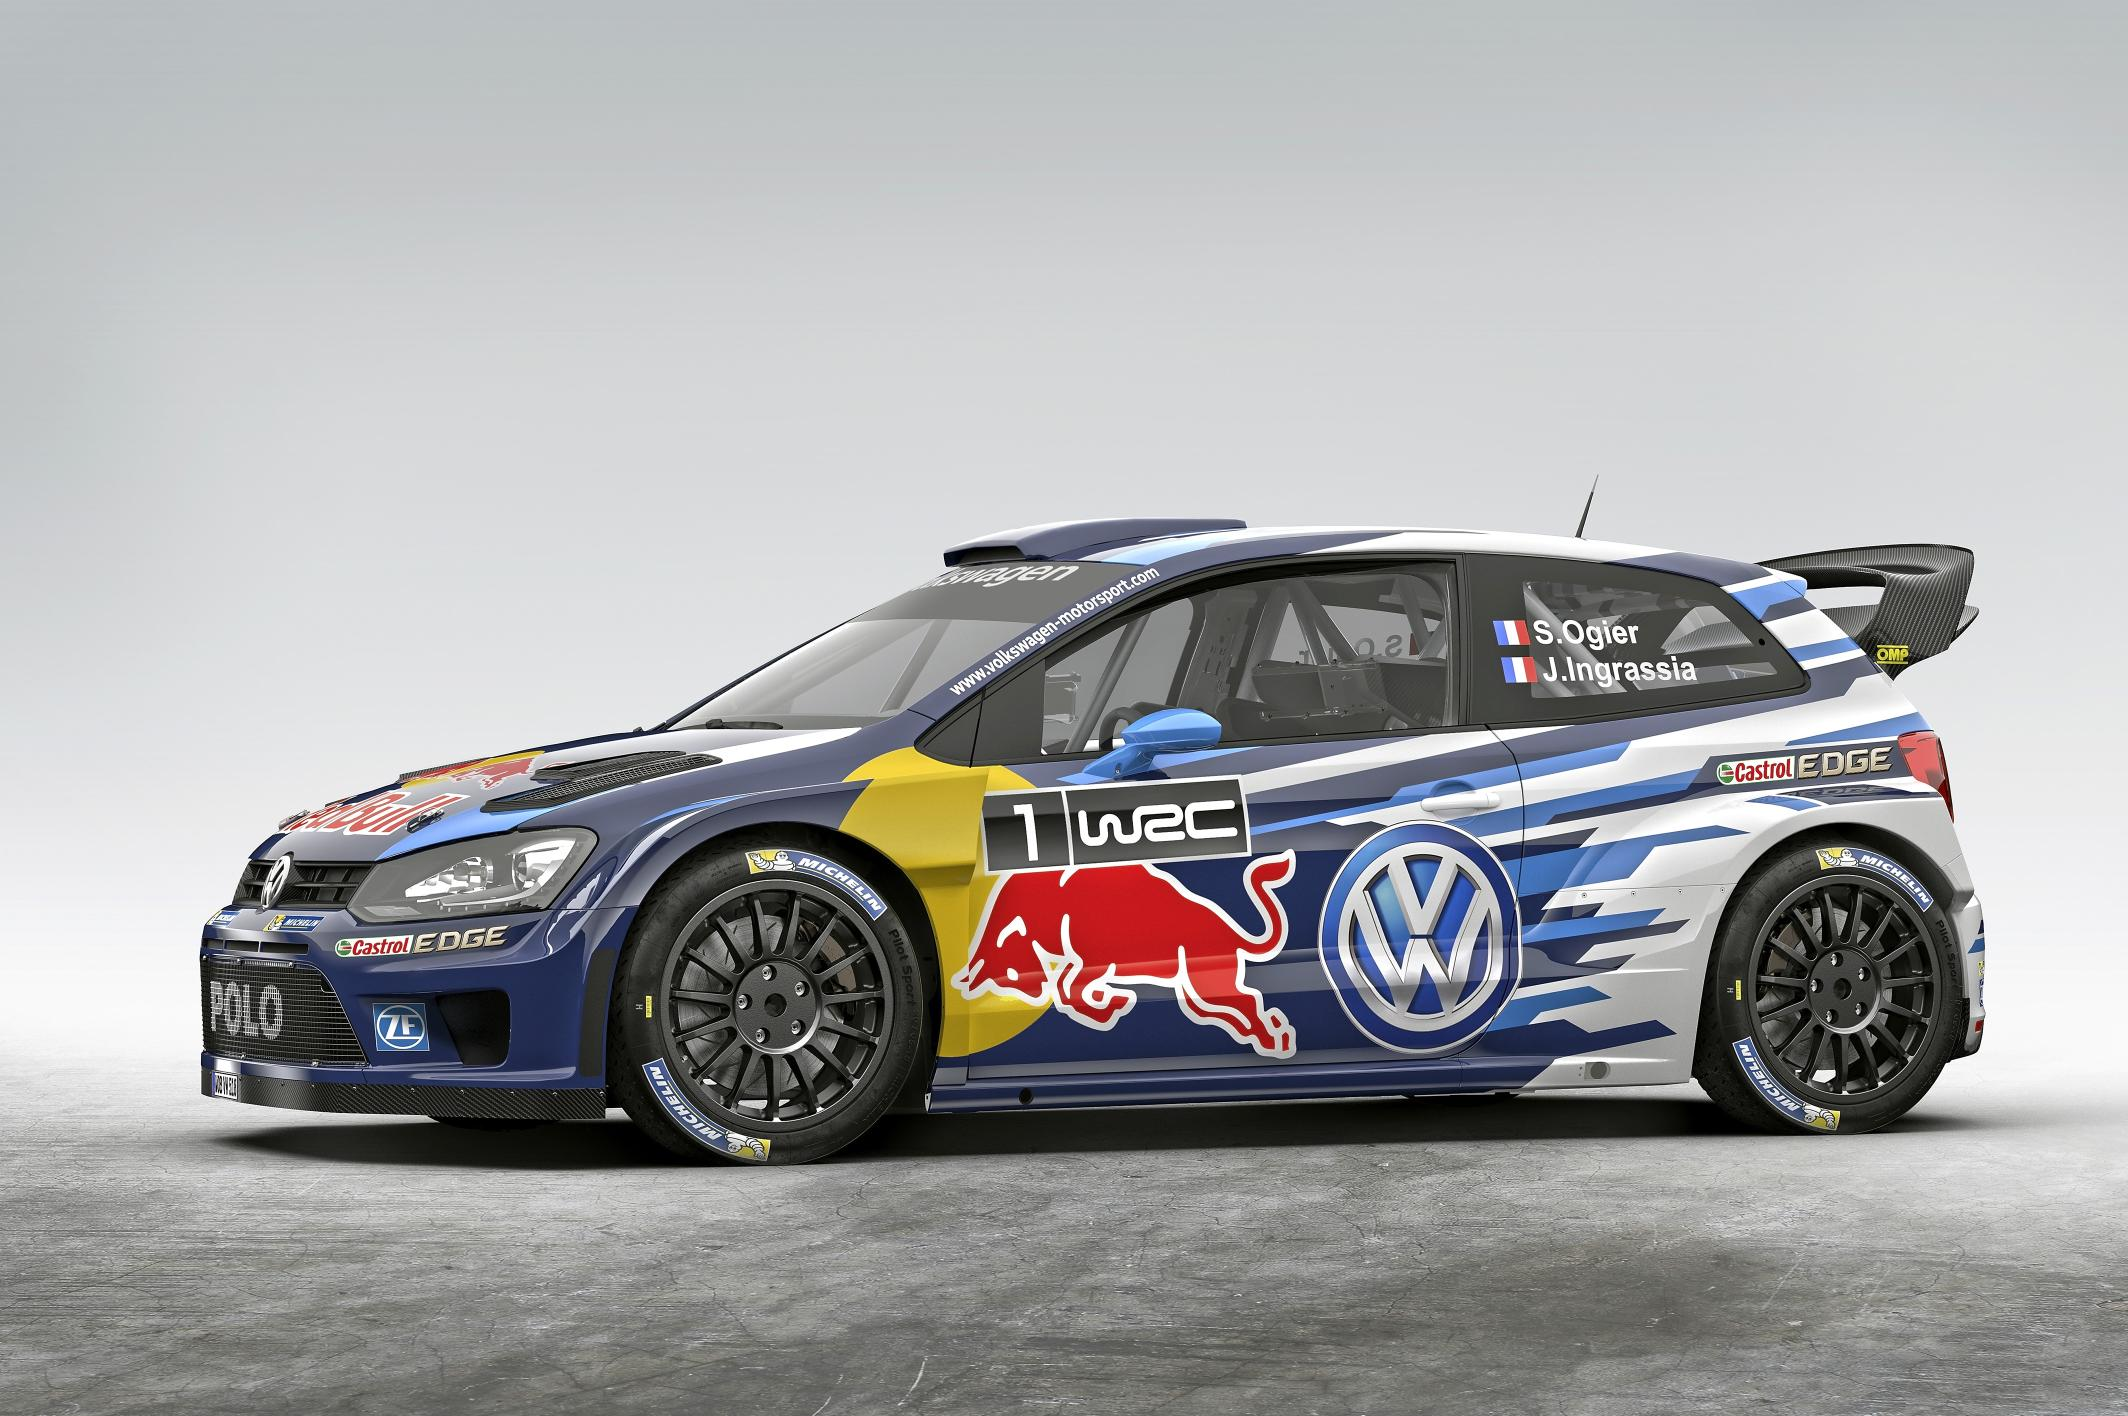 volkswagen unveils 2015 polo r wrc with dark blue livery autoevolution. Black Bedroom Furniture Sets. Home Design Ideas